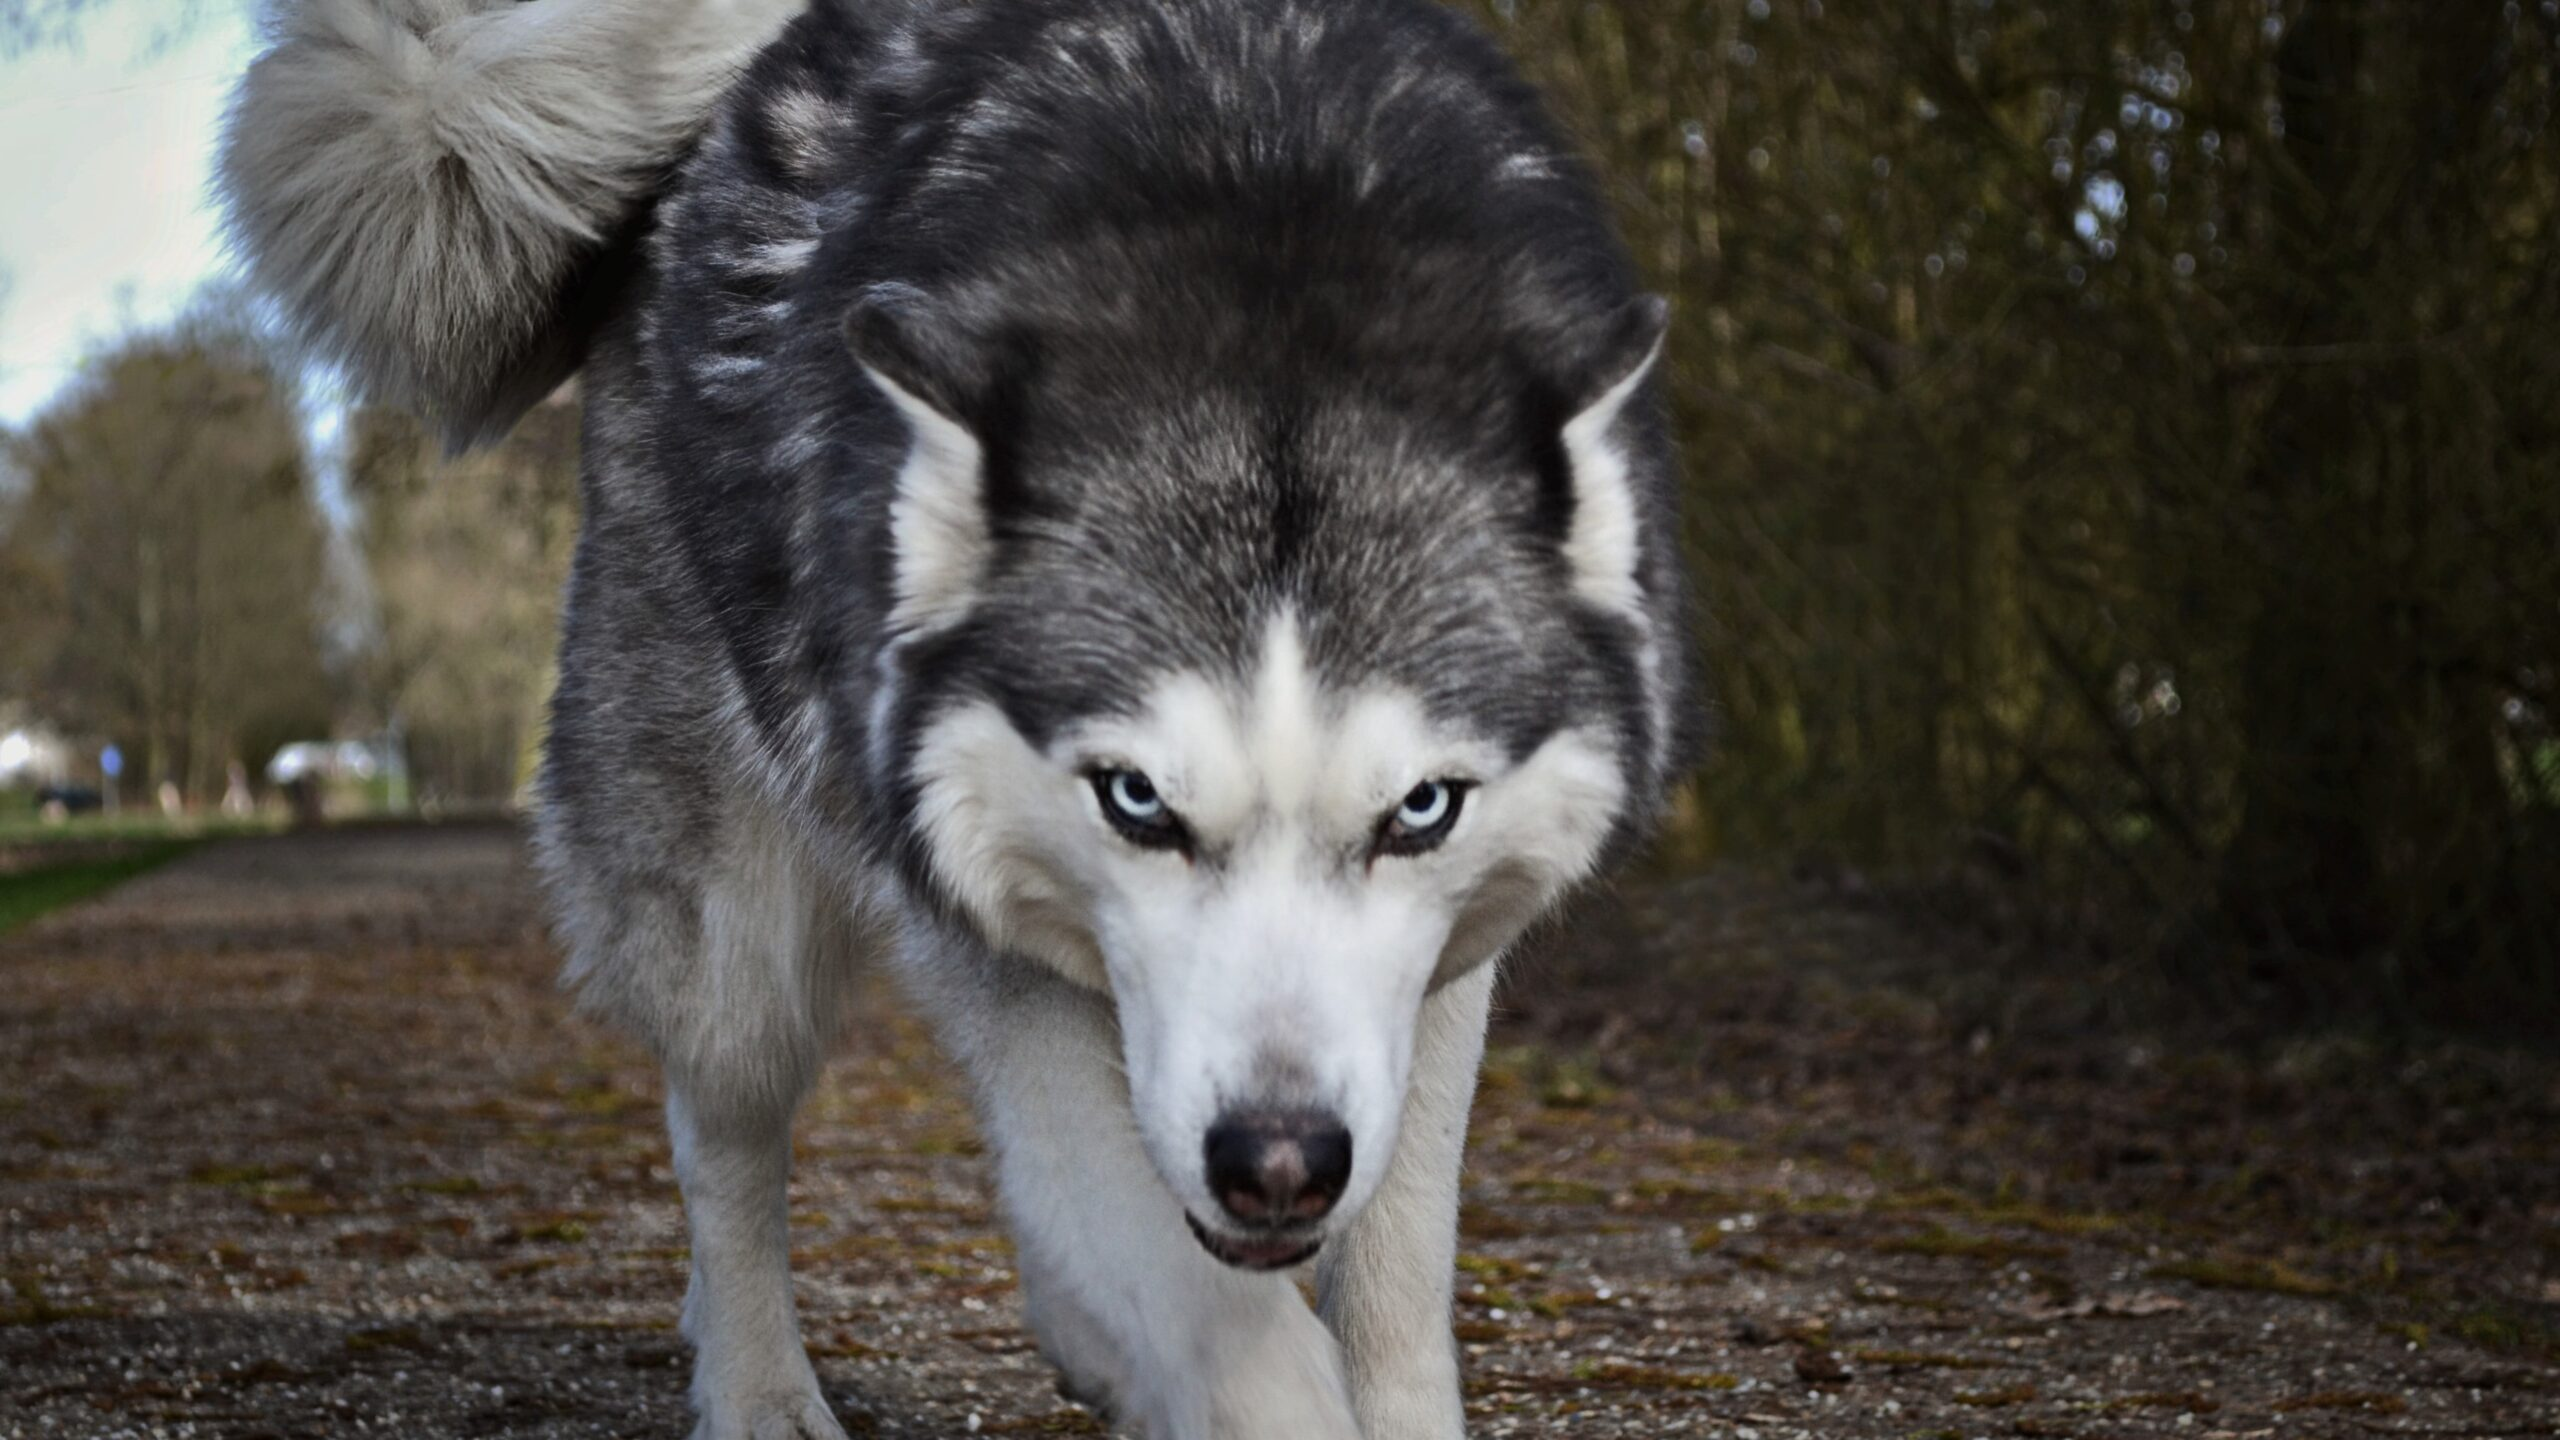 Wolf Escapes from Private Zoo, Attacks Civilians in a Park